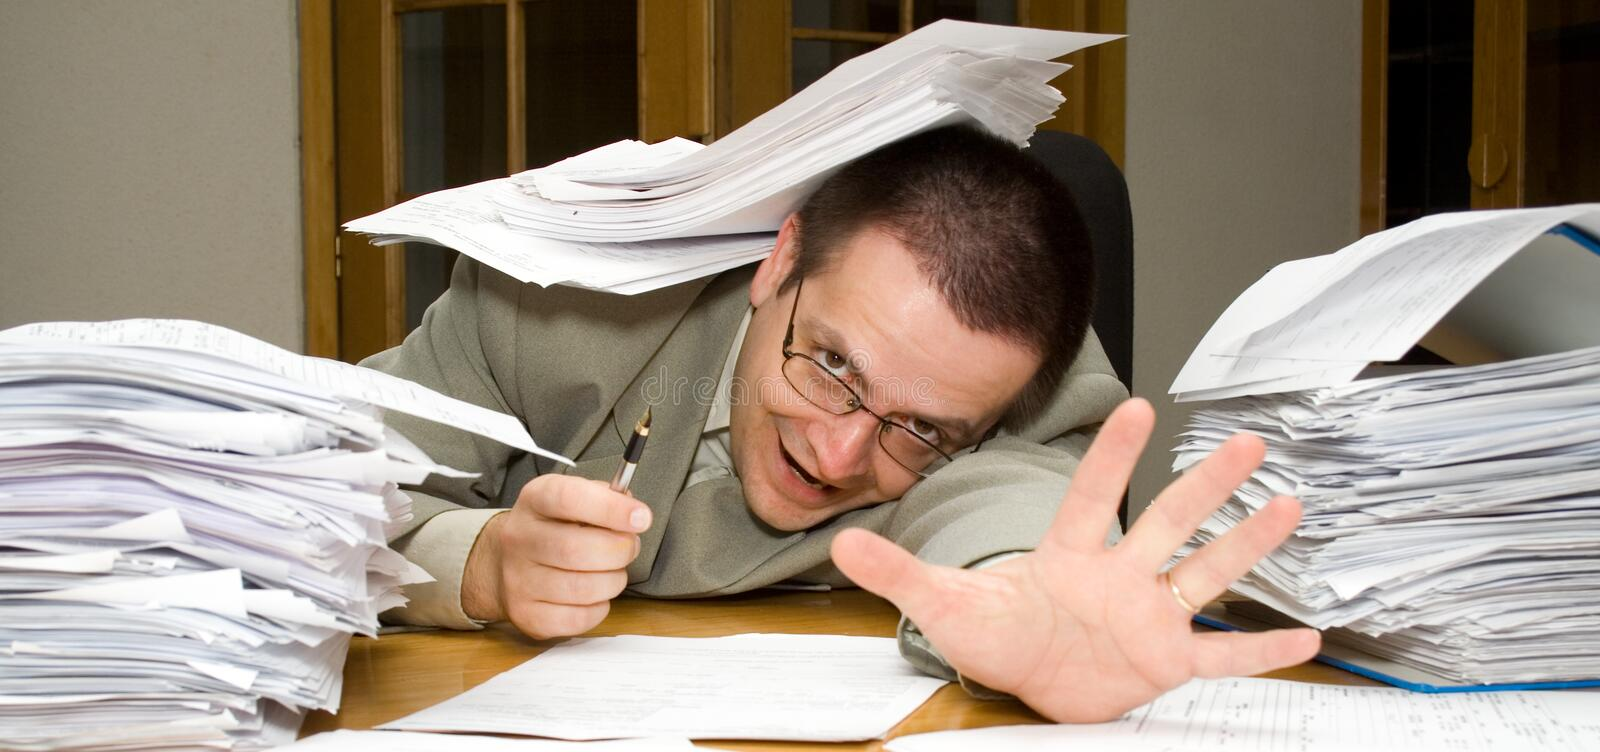 Download Deadline with paperwork stock image. Image of working - 2307327